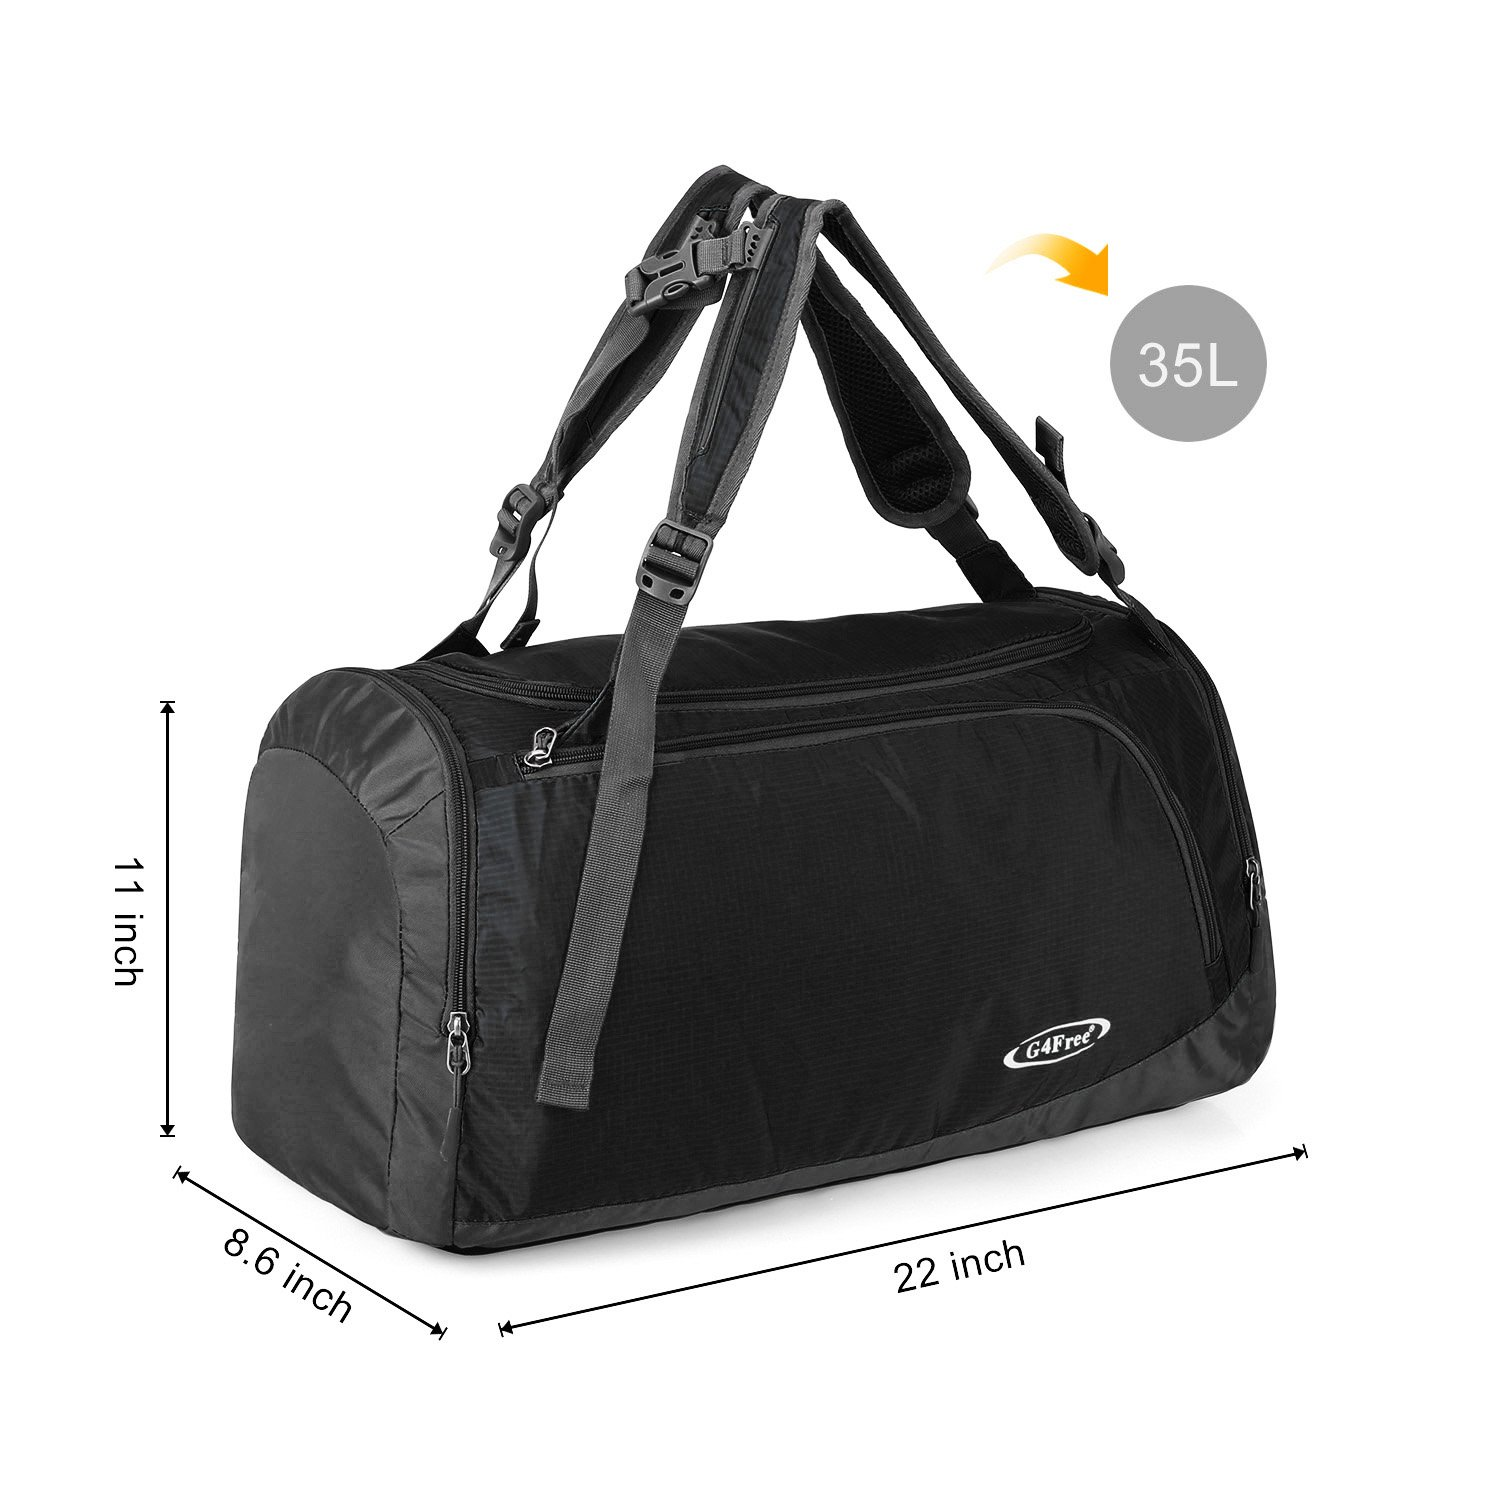 79c6bc5eb726 G4Free Lightweight Sports Bag Gym Bag Travel Duffel Backpack Weekend Bag  with Shoe Compartment  Amazon.co.uk  Sports   Outdoors